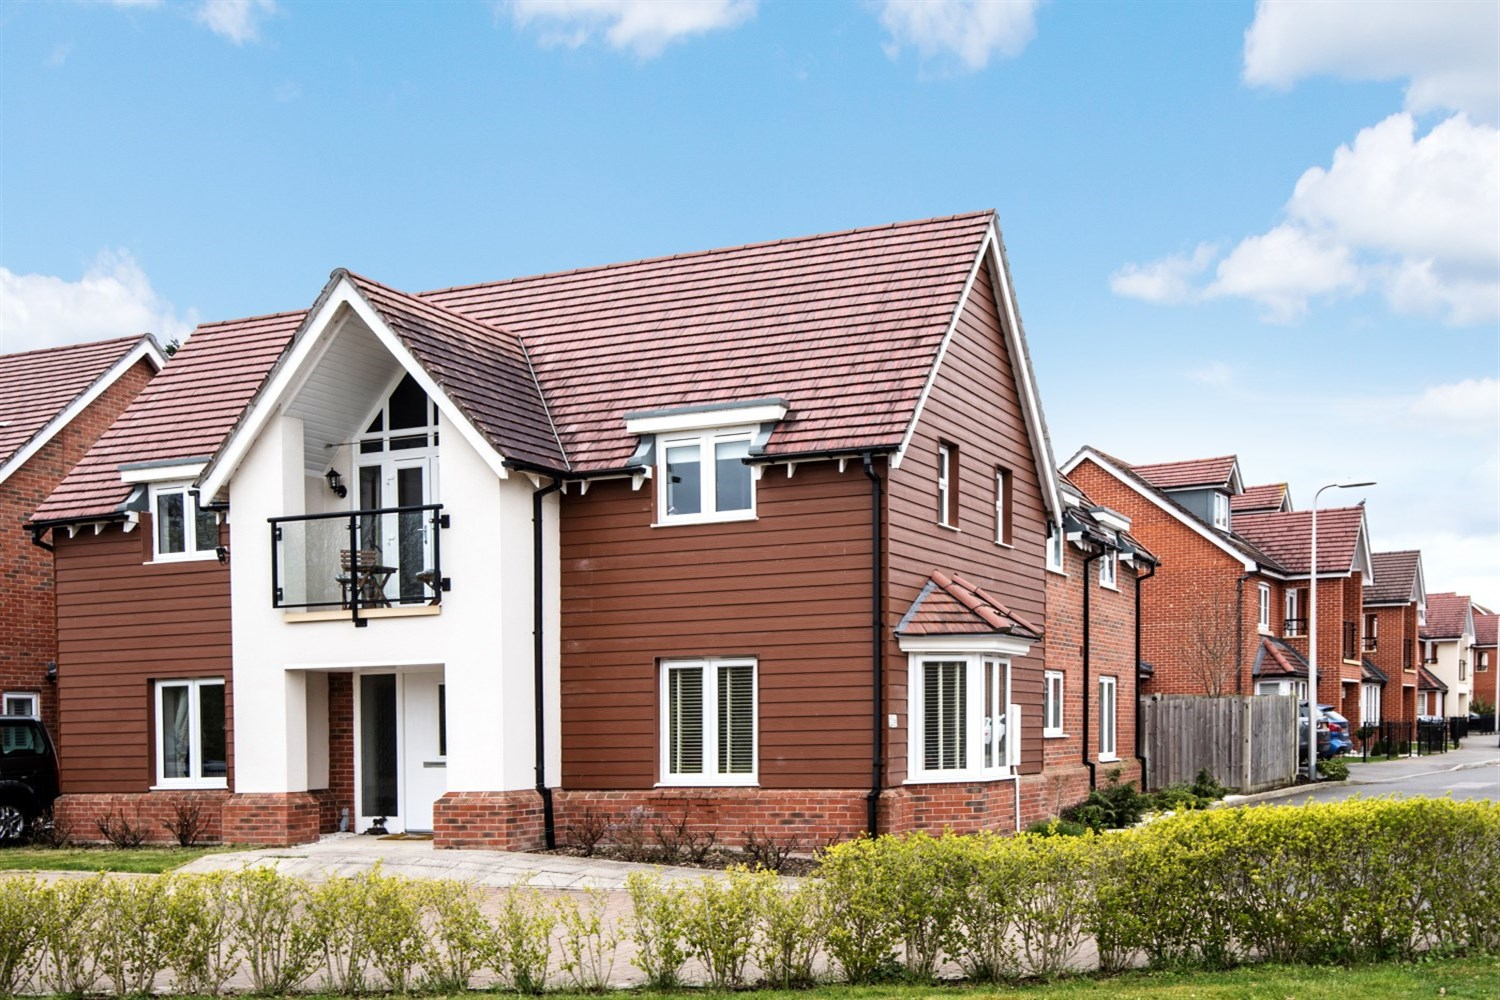 Bluebell Crescent, Reading, RG5 4WP